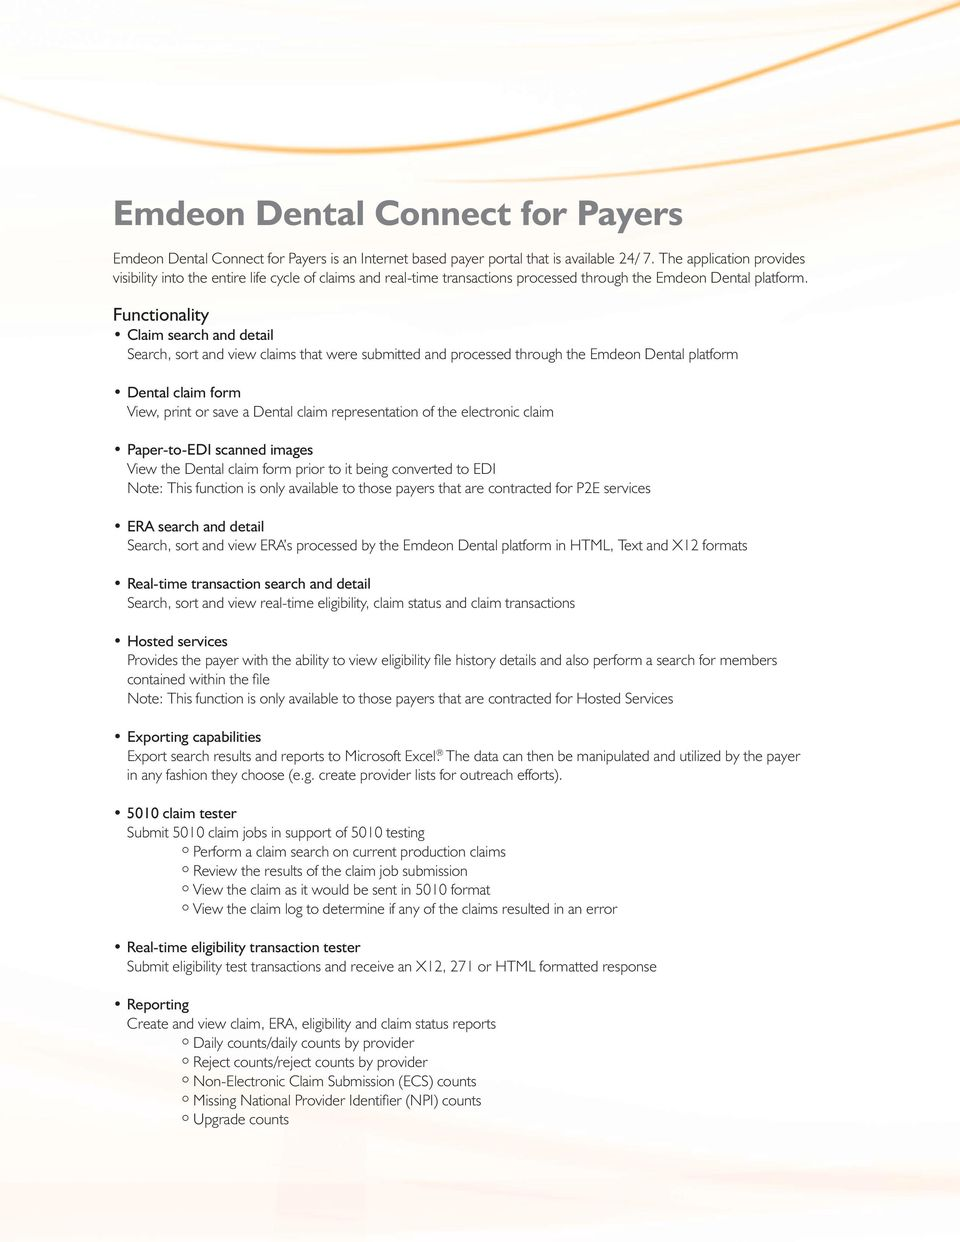 Functionality Claim search and detail Search, sort and view claims that were submitted and processed through the Emdeon Dental platform Dental claim form View, print or save a Dental claim